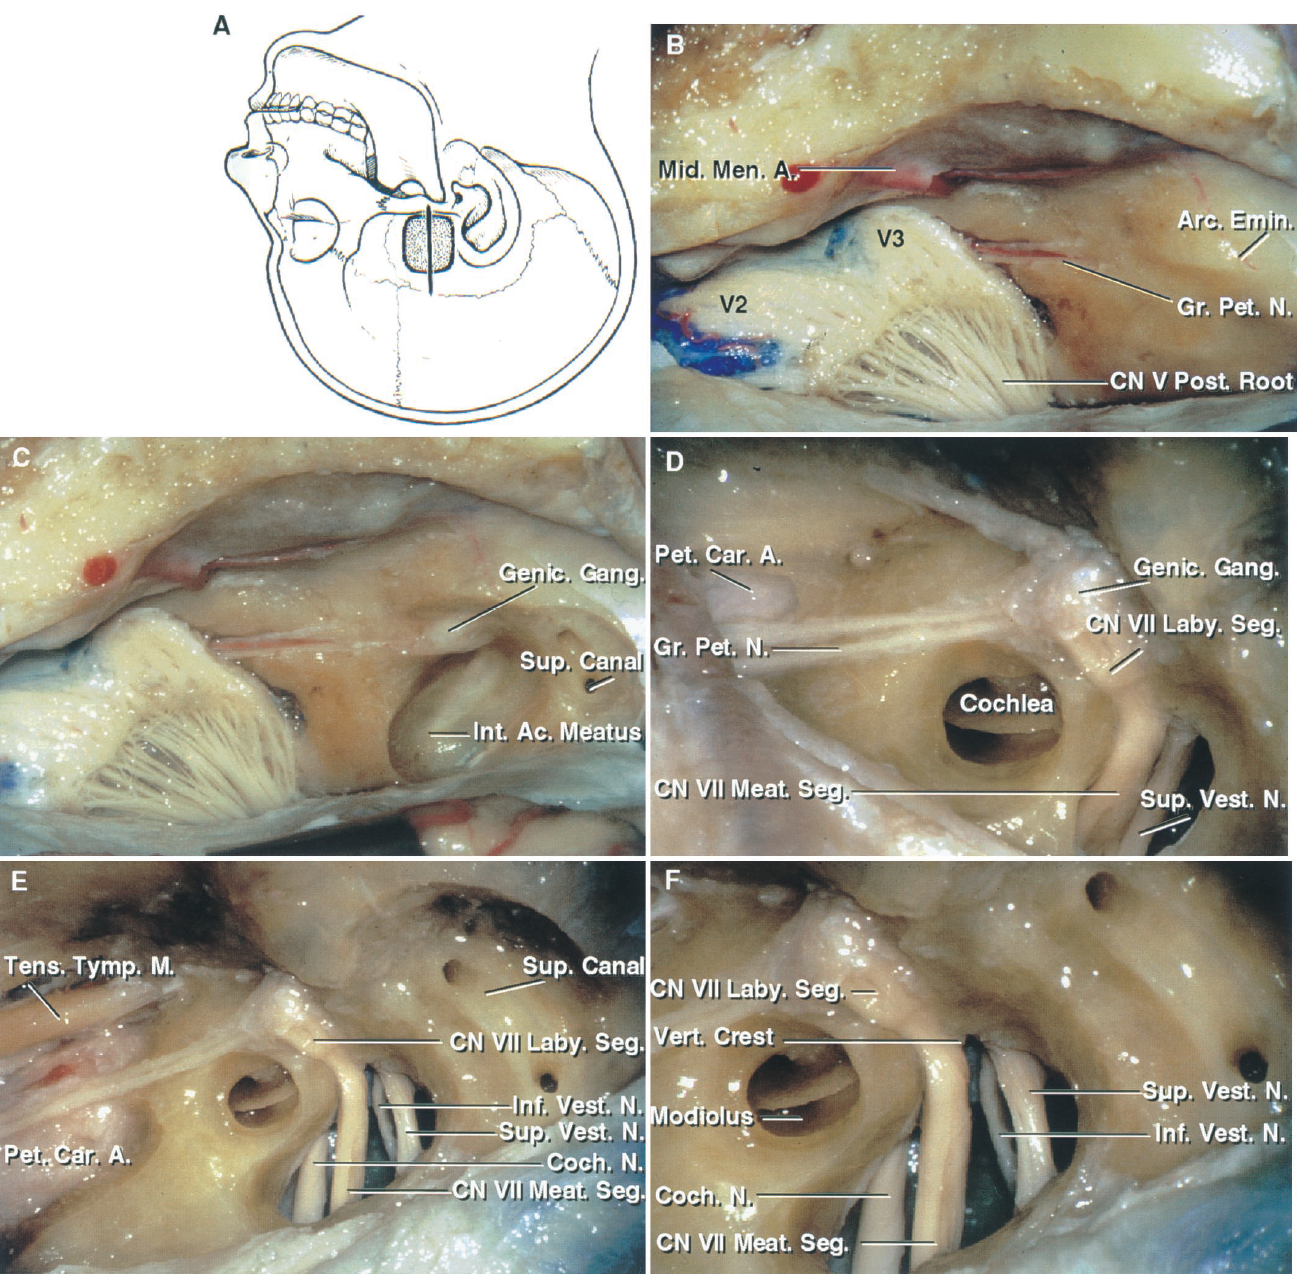 FIGURE 8.11. Middle fossa approach to the internal acoustic meatus. A, the vertical line shows the site of the scalp incision and the stippled area outlines the bone flap bordering the middle fossa floor. B, the dura has been elevated to expose the middle meningeal artery, the greater petrosal nerve, and the arcuate eminence. C, bone has been removed to expose the junction of the greater petrosal nerve and the geniculate ganglion. A portion of the upper wall of the internal meatus has been removed. The upper surface of the arcuate eminence has been drilled to expose the superior semicircular canal. In the middle fossa approach, for an acoustic neuroma, the cochlea and semicircular canal are not opened, as seen in this dissection illustrating some of the important structures that are to be avoided in opening the meatus. D, enlarged view. The cochlea, located below the middle fossa floor in the angle between the facial and greater petrosal nerves, has been opened in the area anteromedial to the meatal fundus. The roof of the meatus has been opened to expose the superior vestibular nerve, which innervates the ampullae of the superior and lateral canals and the meatal segment of the facial nerve. E, the vestibule and semicircular canals are located posterolateral and the cochlea is located anteromedial to the meatal fundus. The tensor tympani is layered along the anterior edge and the greater petrosal nerve above the petrous carotid. F, enlarged view. The vertical crest (Bill's bar) separates the facial and superior vestibular nerves at the meatal fundus. The superior and inferior vestibular nerves are located posteriorly and the facial and cochlear nerves anteriorly in the meatus, with the cochlear nerve passing below the facial nerve to enter the modiolus. The labyrinthine segment of the facial nerve courses superolateral to the cochlea. A., artery; Ac., acoustic; Arc., arcuate; Car., carotid; CN, cranial nerve; Coch., cochlear; Emin., eminence; Gang., ganglion; Genic